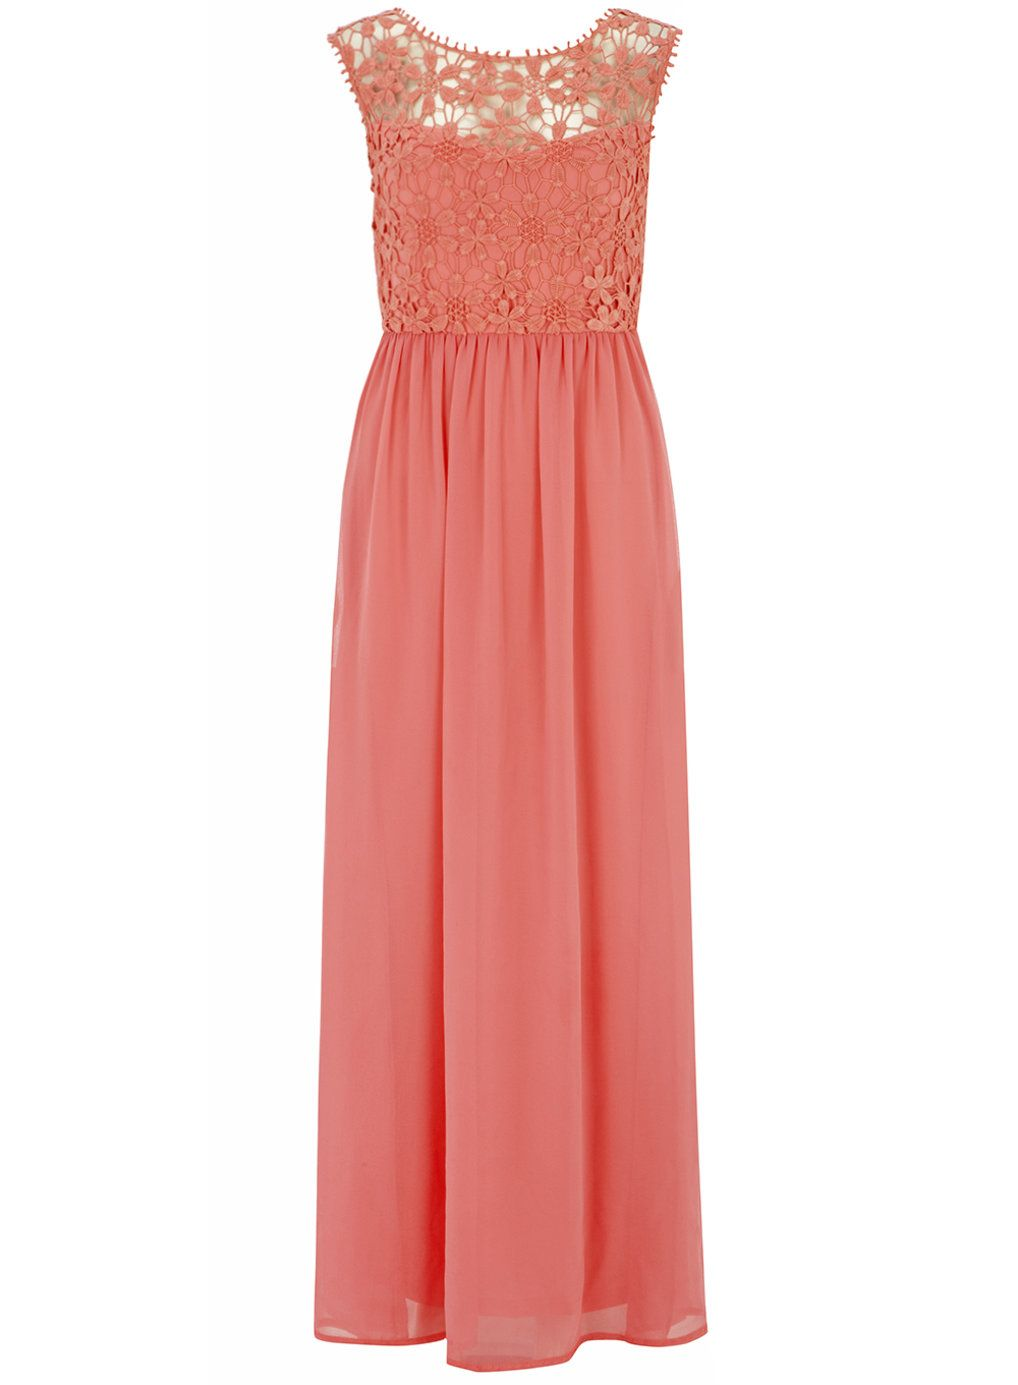 Destination wedding guest dresses  Lola Skye Coral Crochet Maxi Dress  Summer Maxis and Style